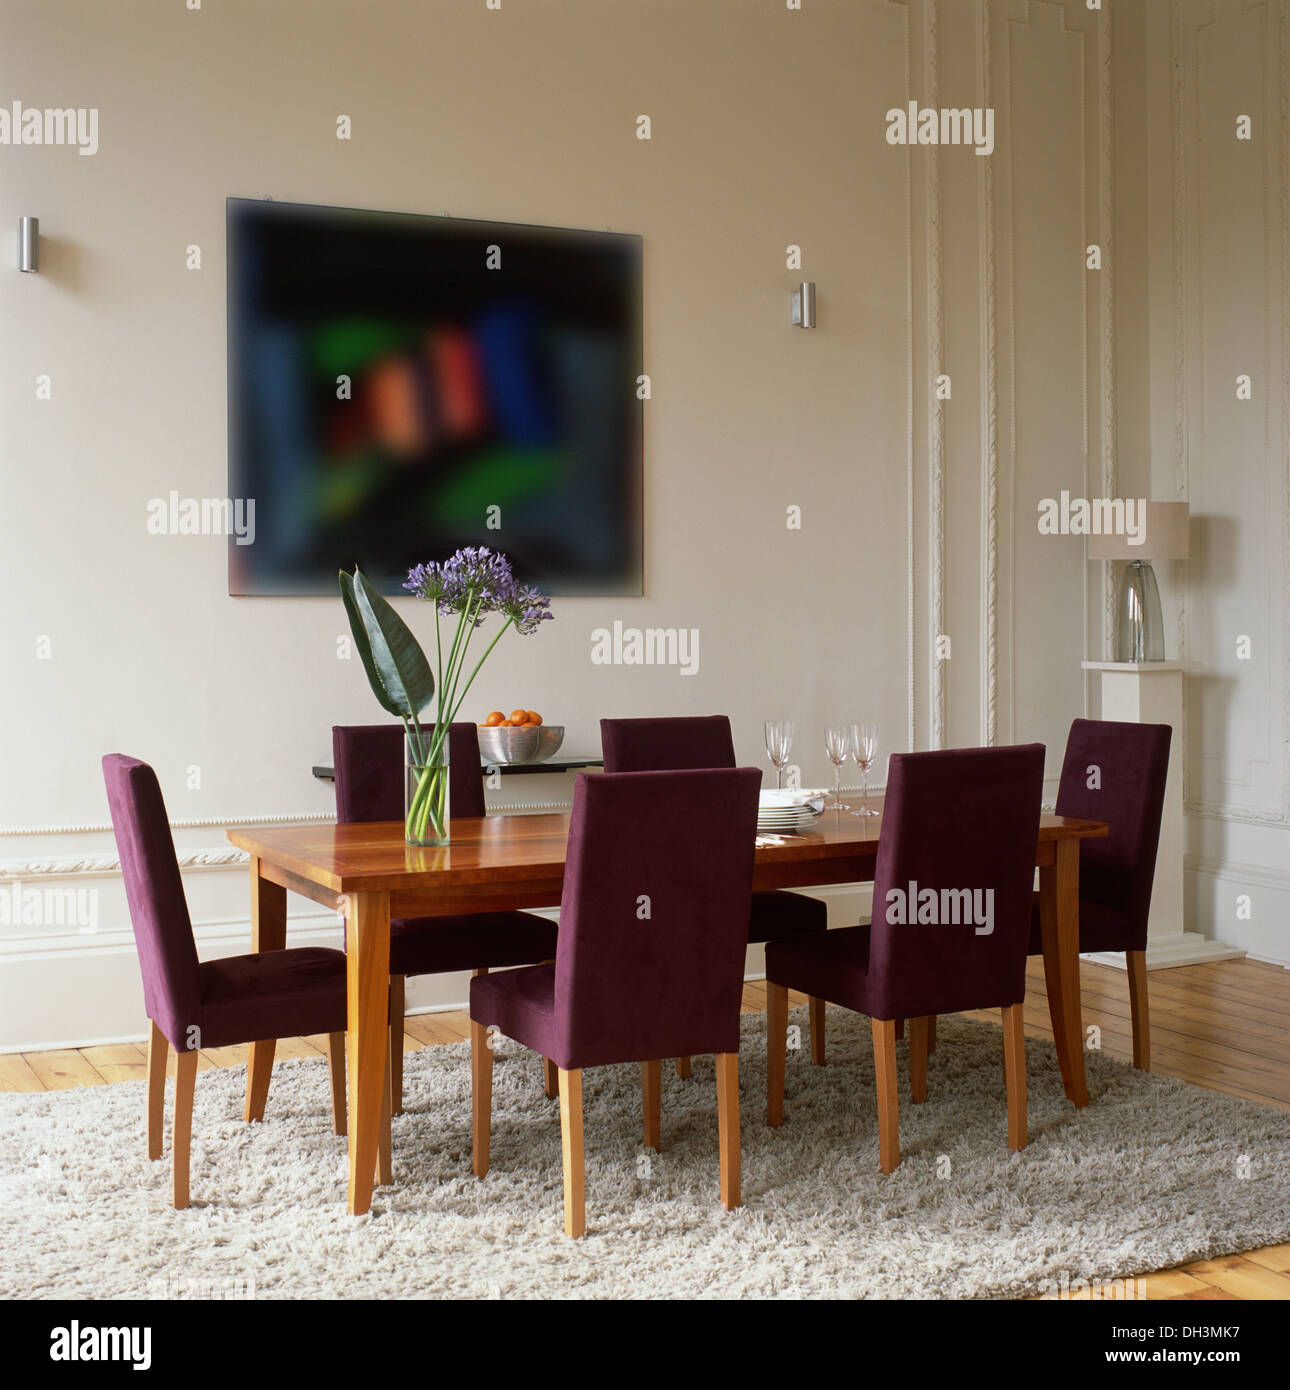 Purple Upholstered Chairs At Plain Wood Table In Modern Dining Room With White Shag Pile Rug On Wooden Flooring